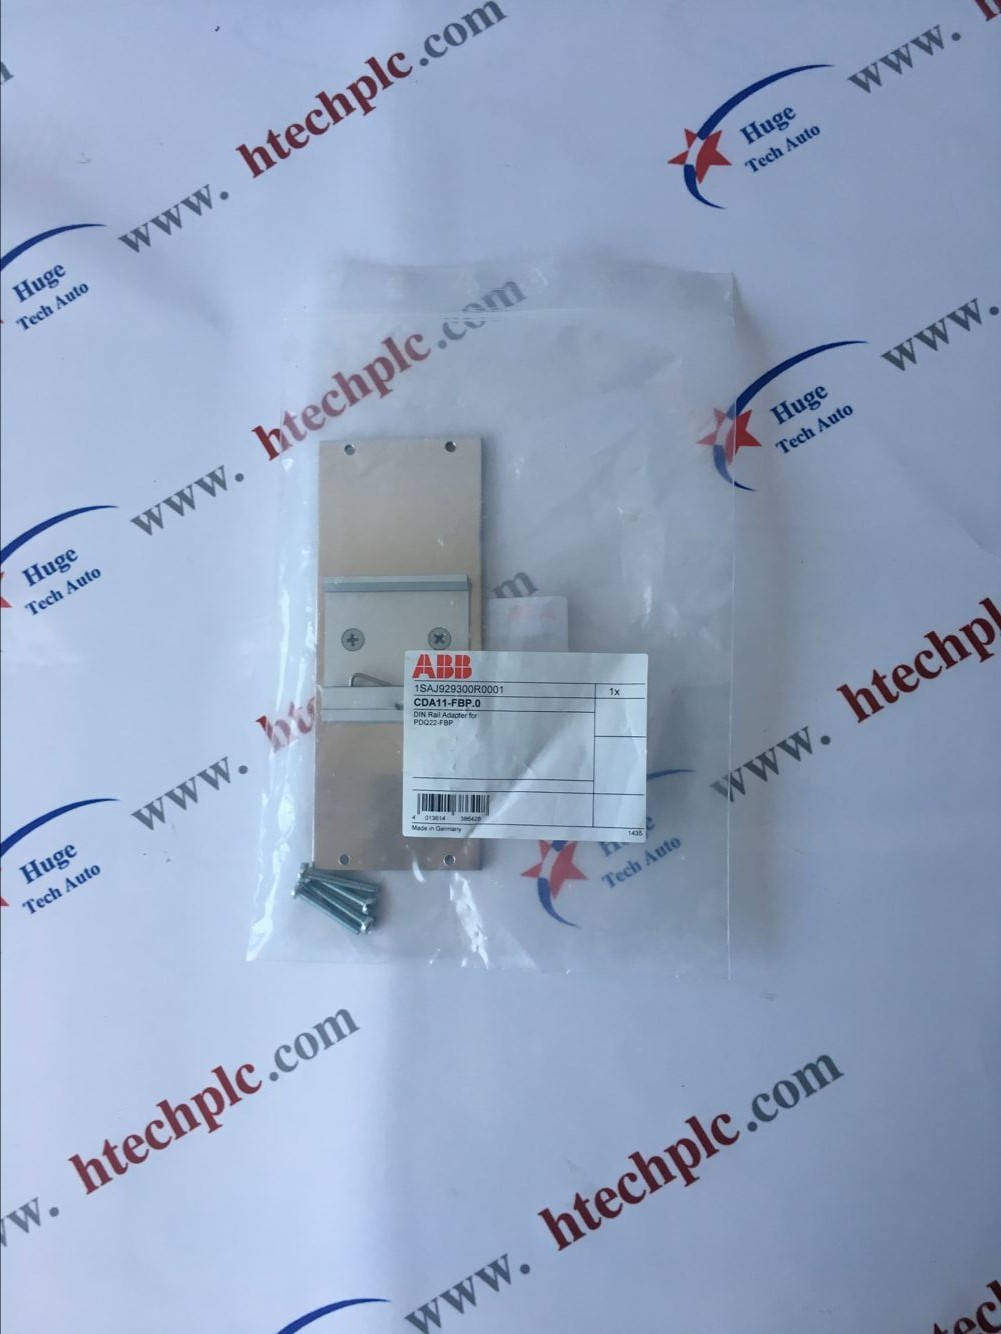 ABB DSCA114 high quality brand new industrial modules with negotiable price